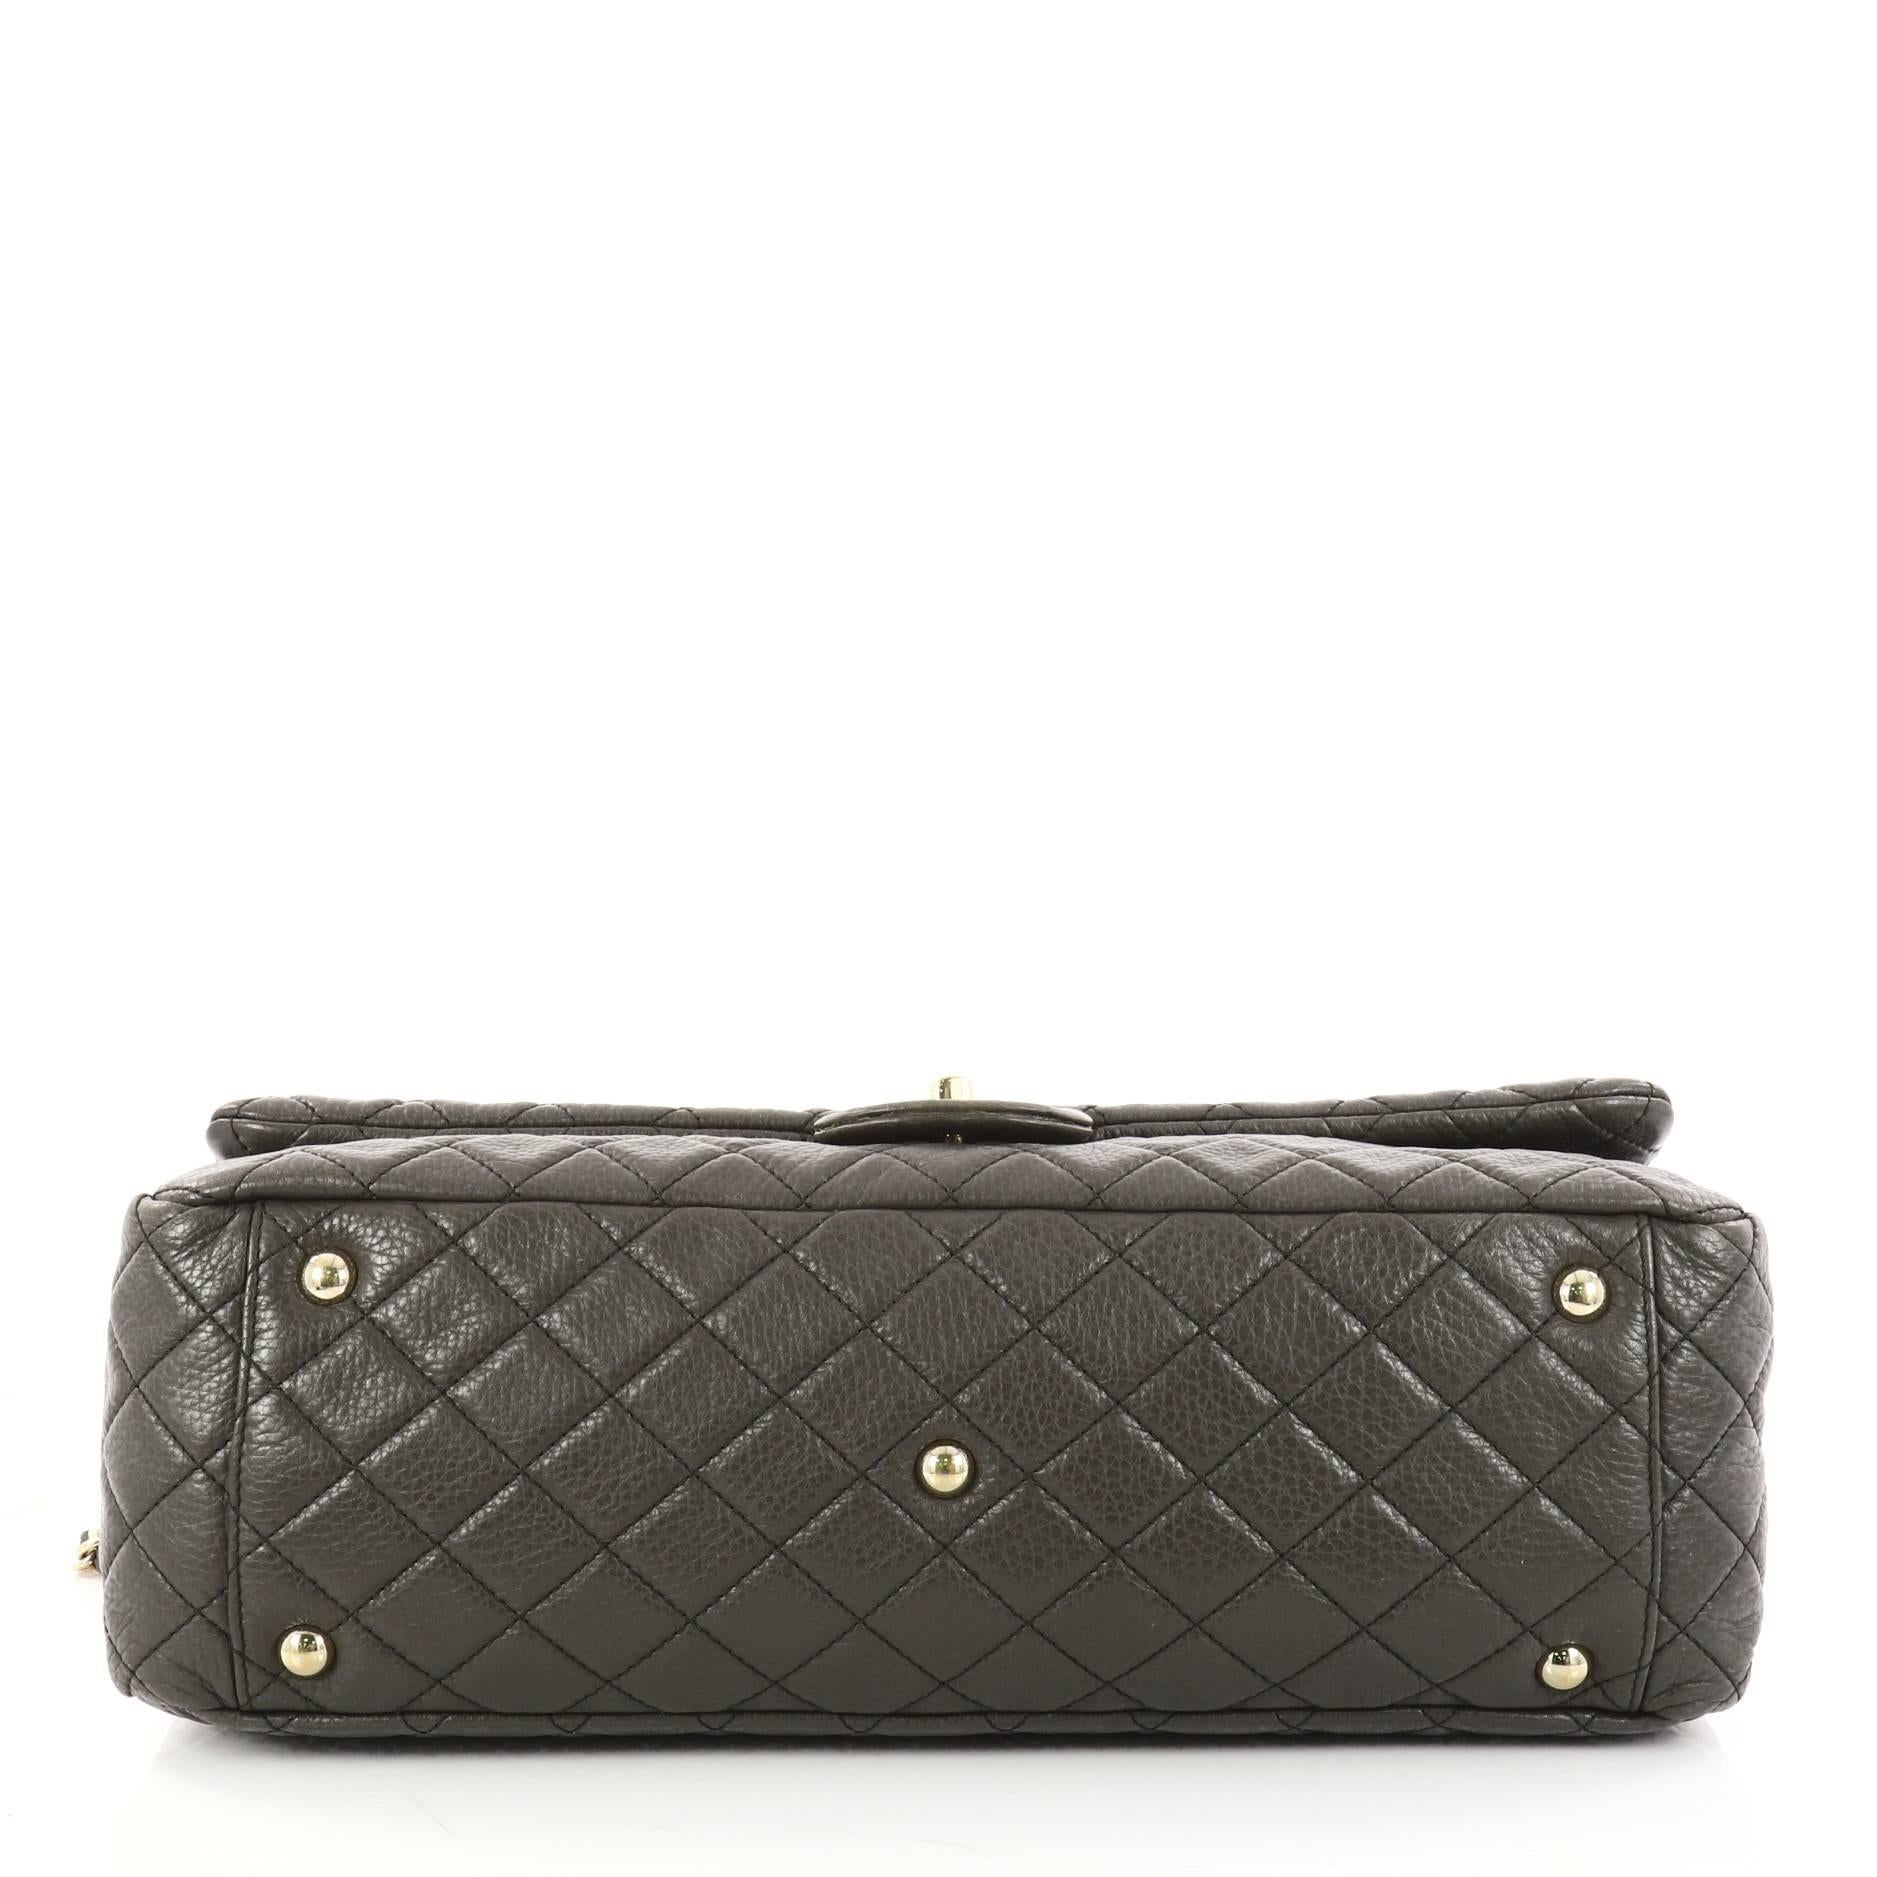 7a3dd6943faa Chanel Airlines CC Quilted Calfskin XXL Flap Bag at 1stdibs